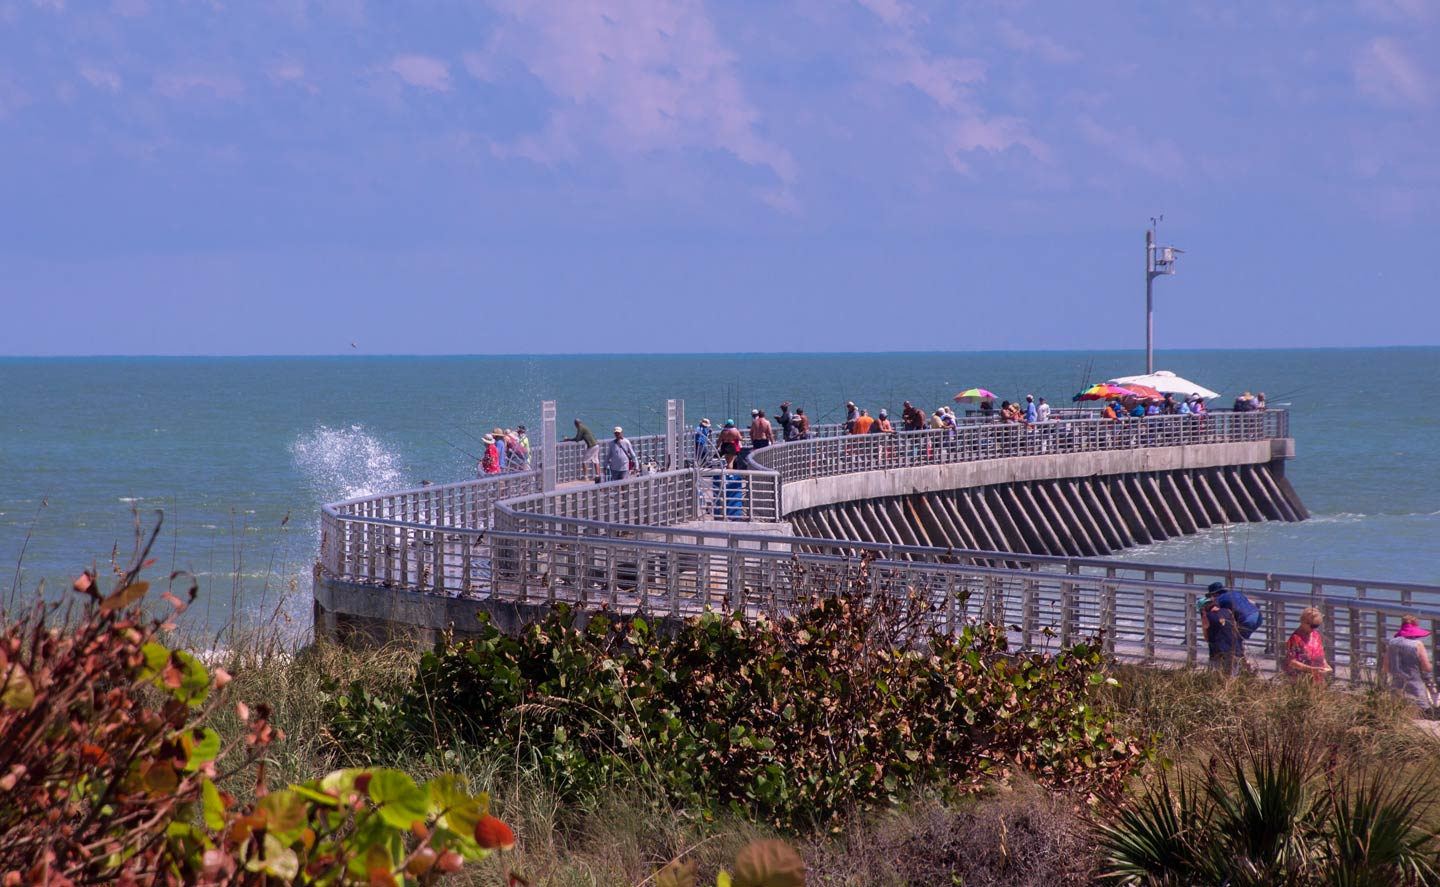 A view of a Sebastian Inlet fishing pier stretching out onto the ocean